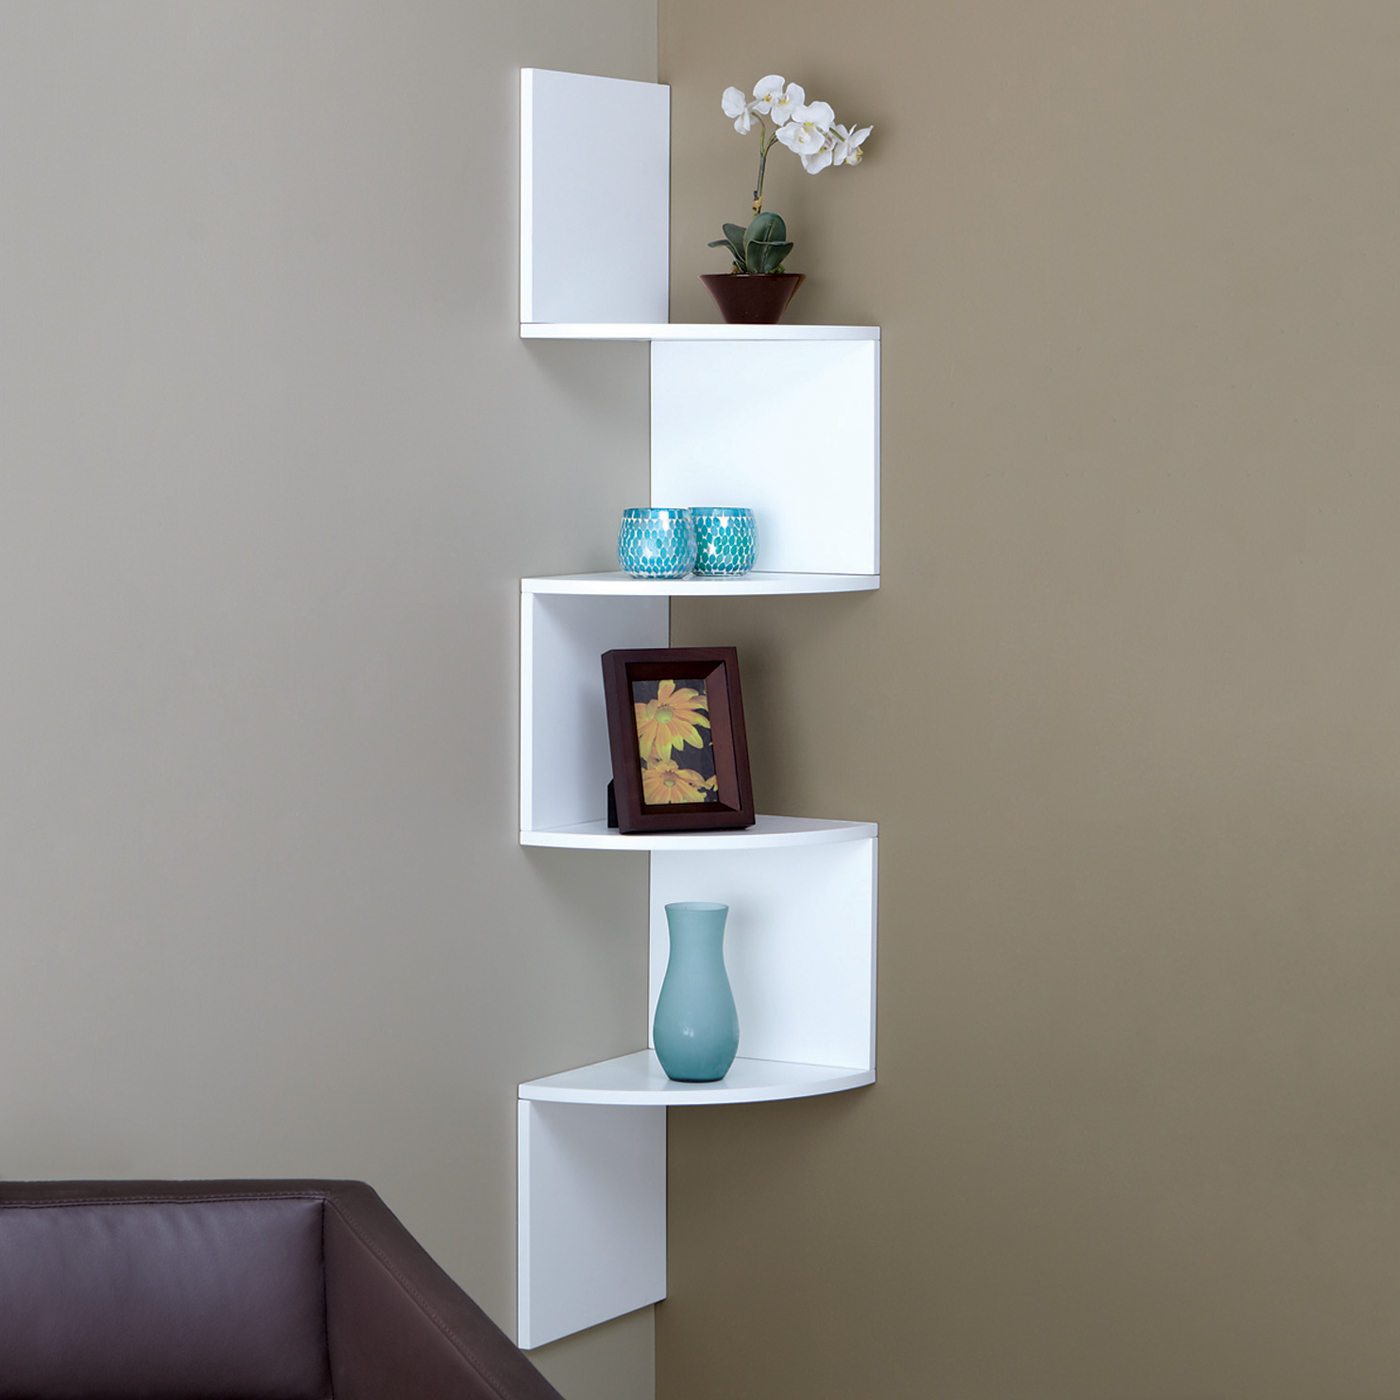 Amusing Design Of The White Wooden Shelves At Corner Ideas On The Grey Wall